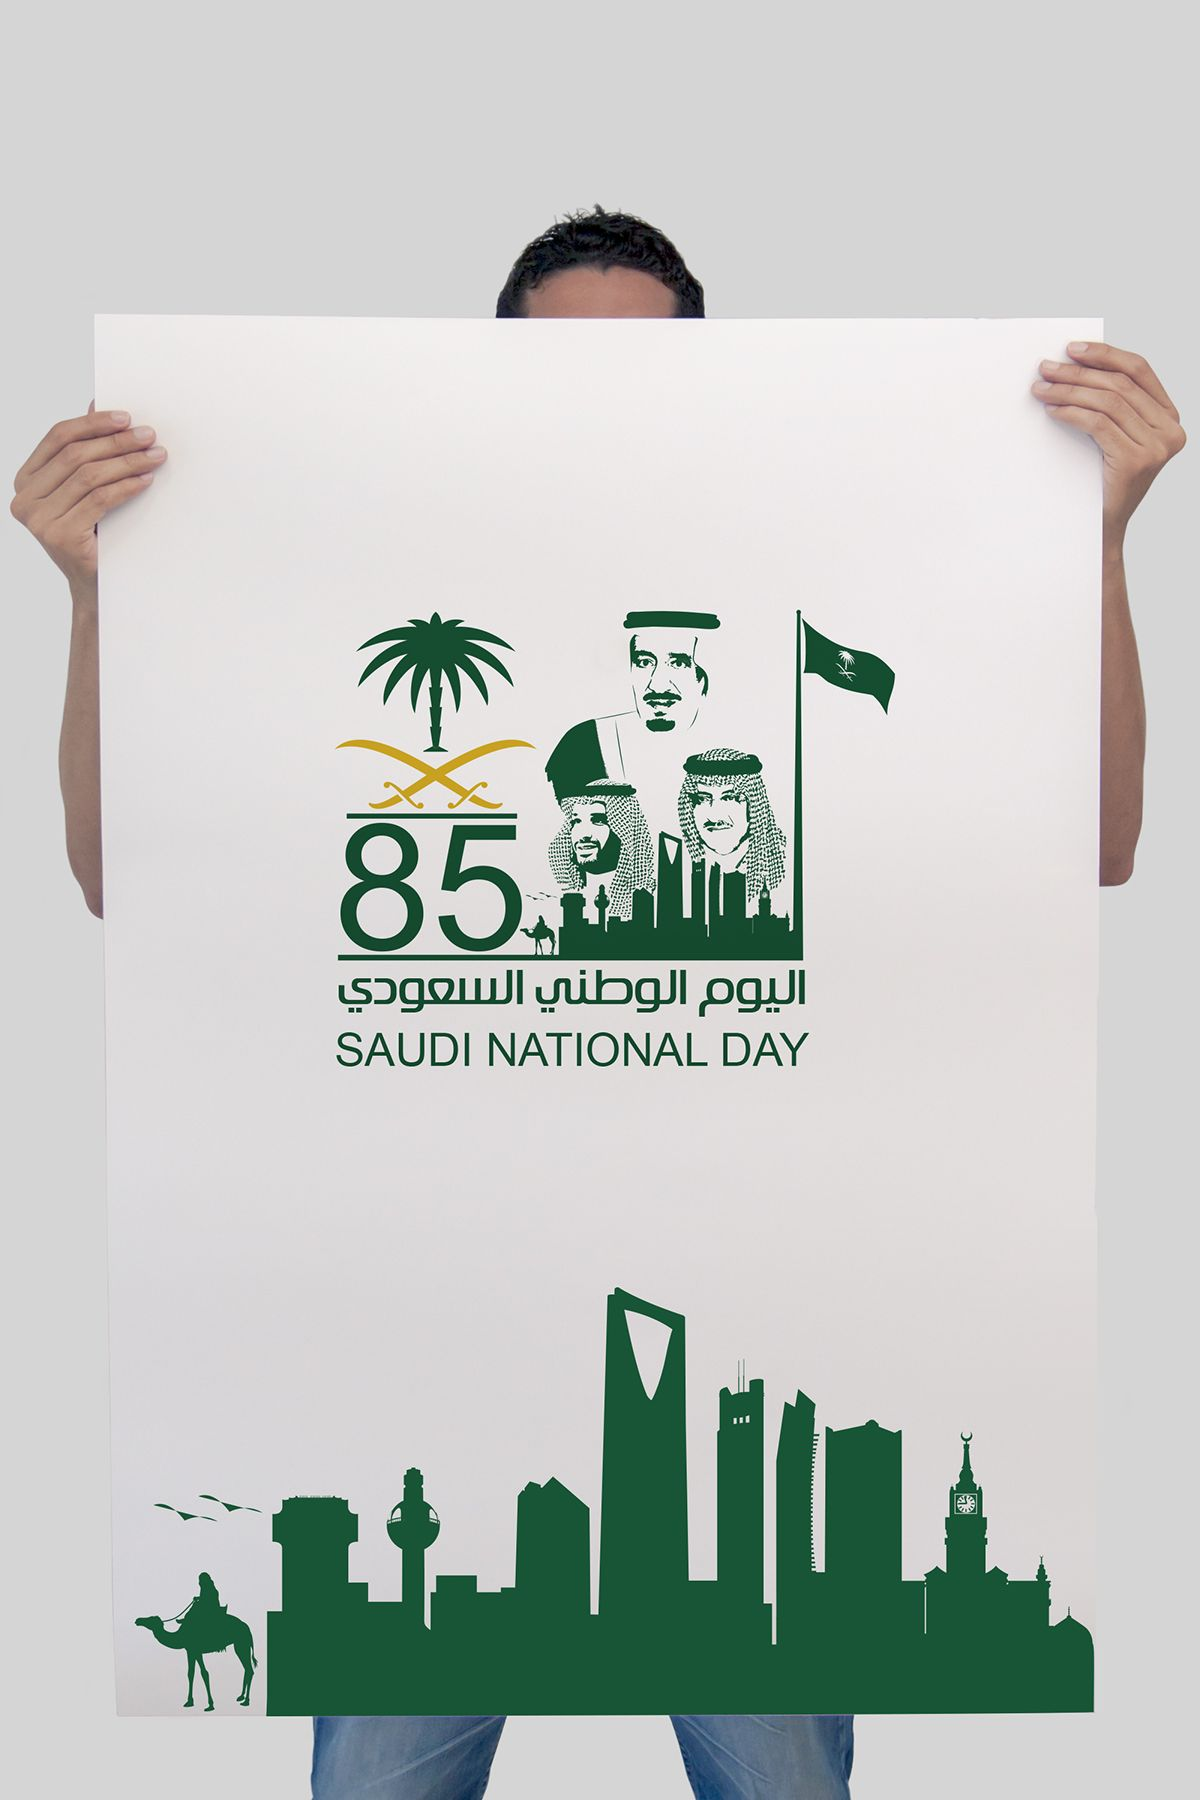 saudi arabia national day National day of saudi arabia vector choose from thousands of free vectors, clip art designs, icons, and illustrations created by artists worldwide.